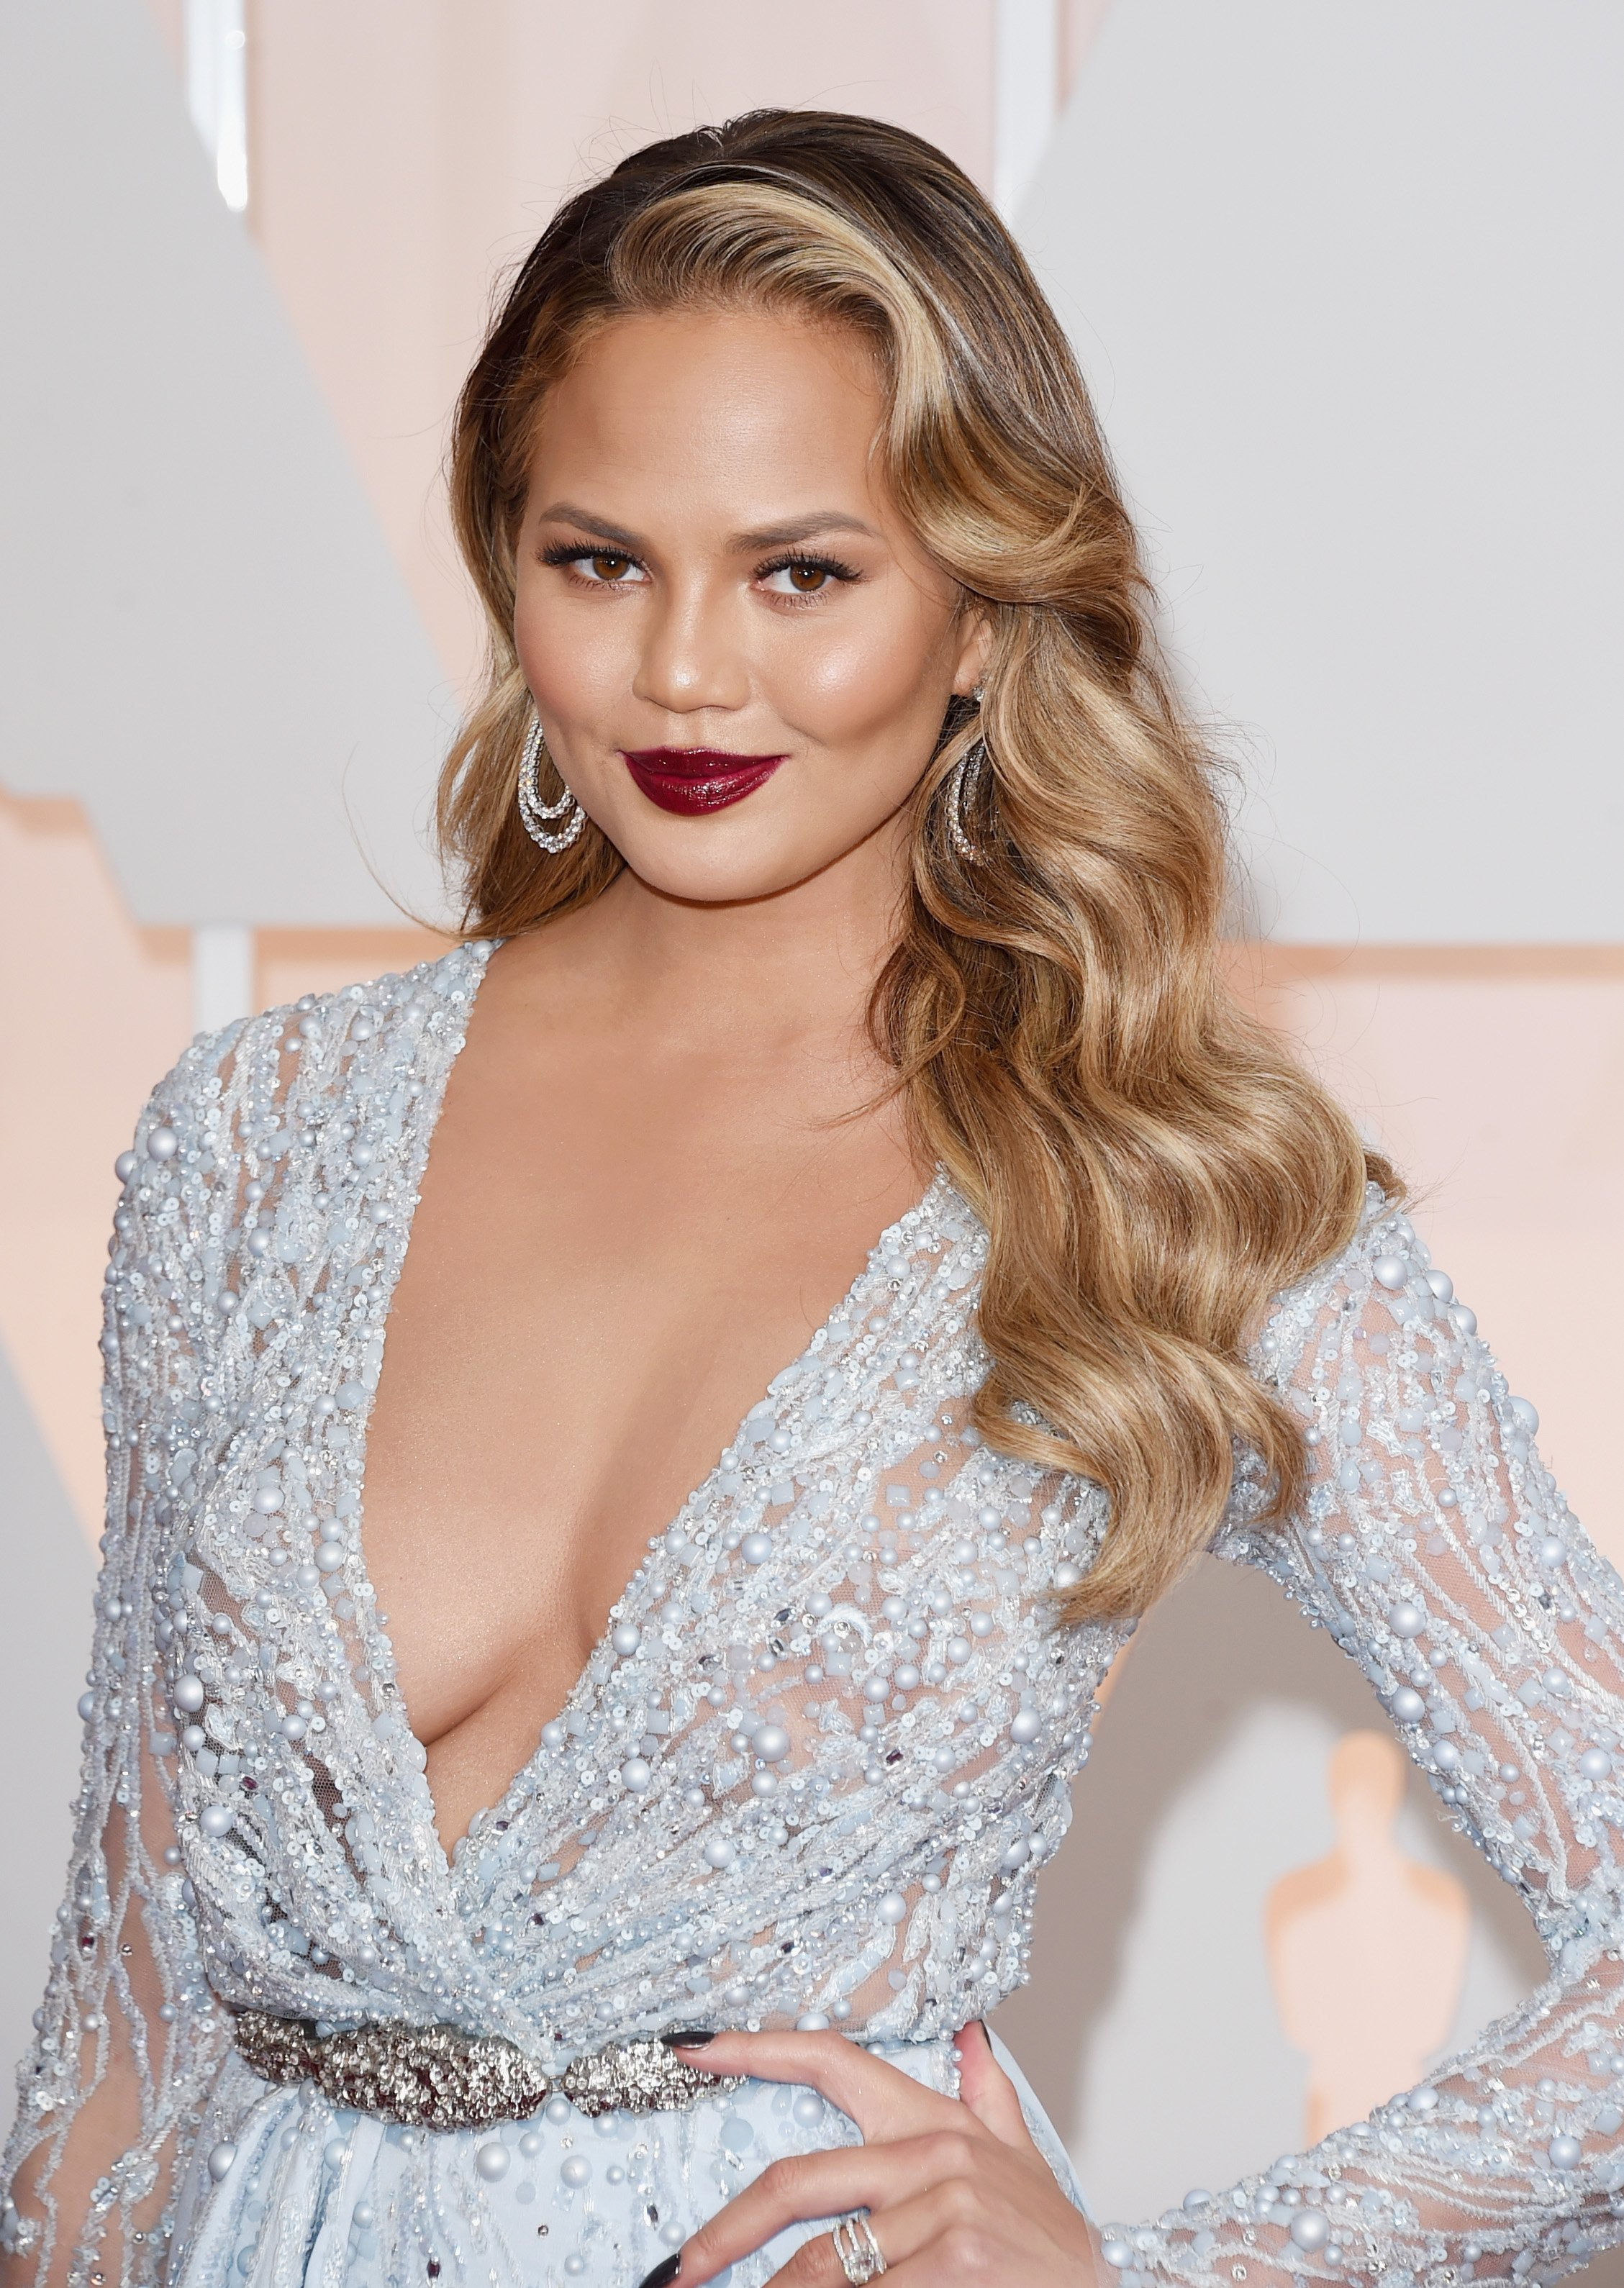 Chrissy Teigen attending the 87th Annual Academy Awards  Source | Photo: Getty Images